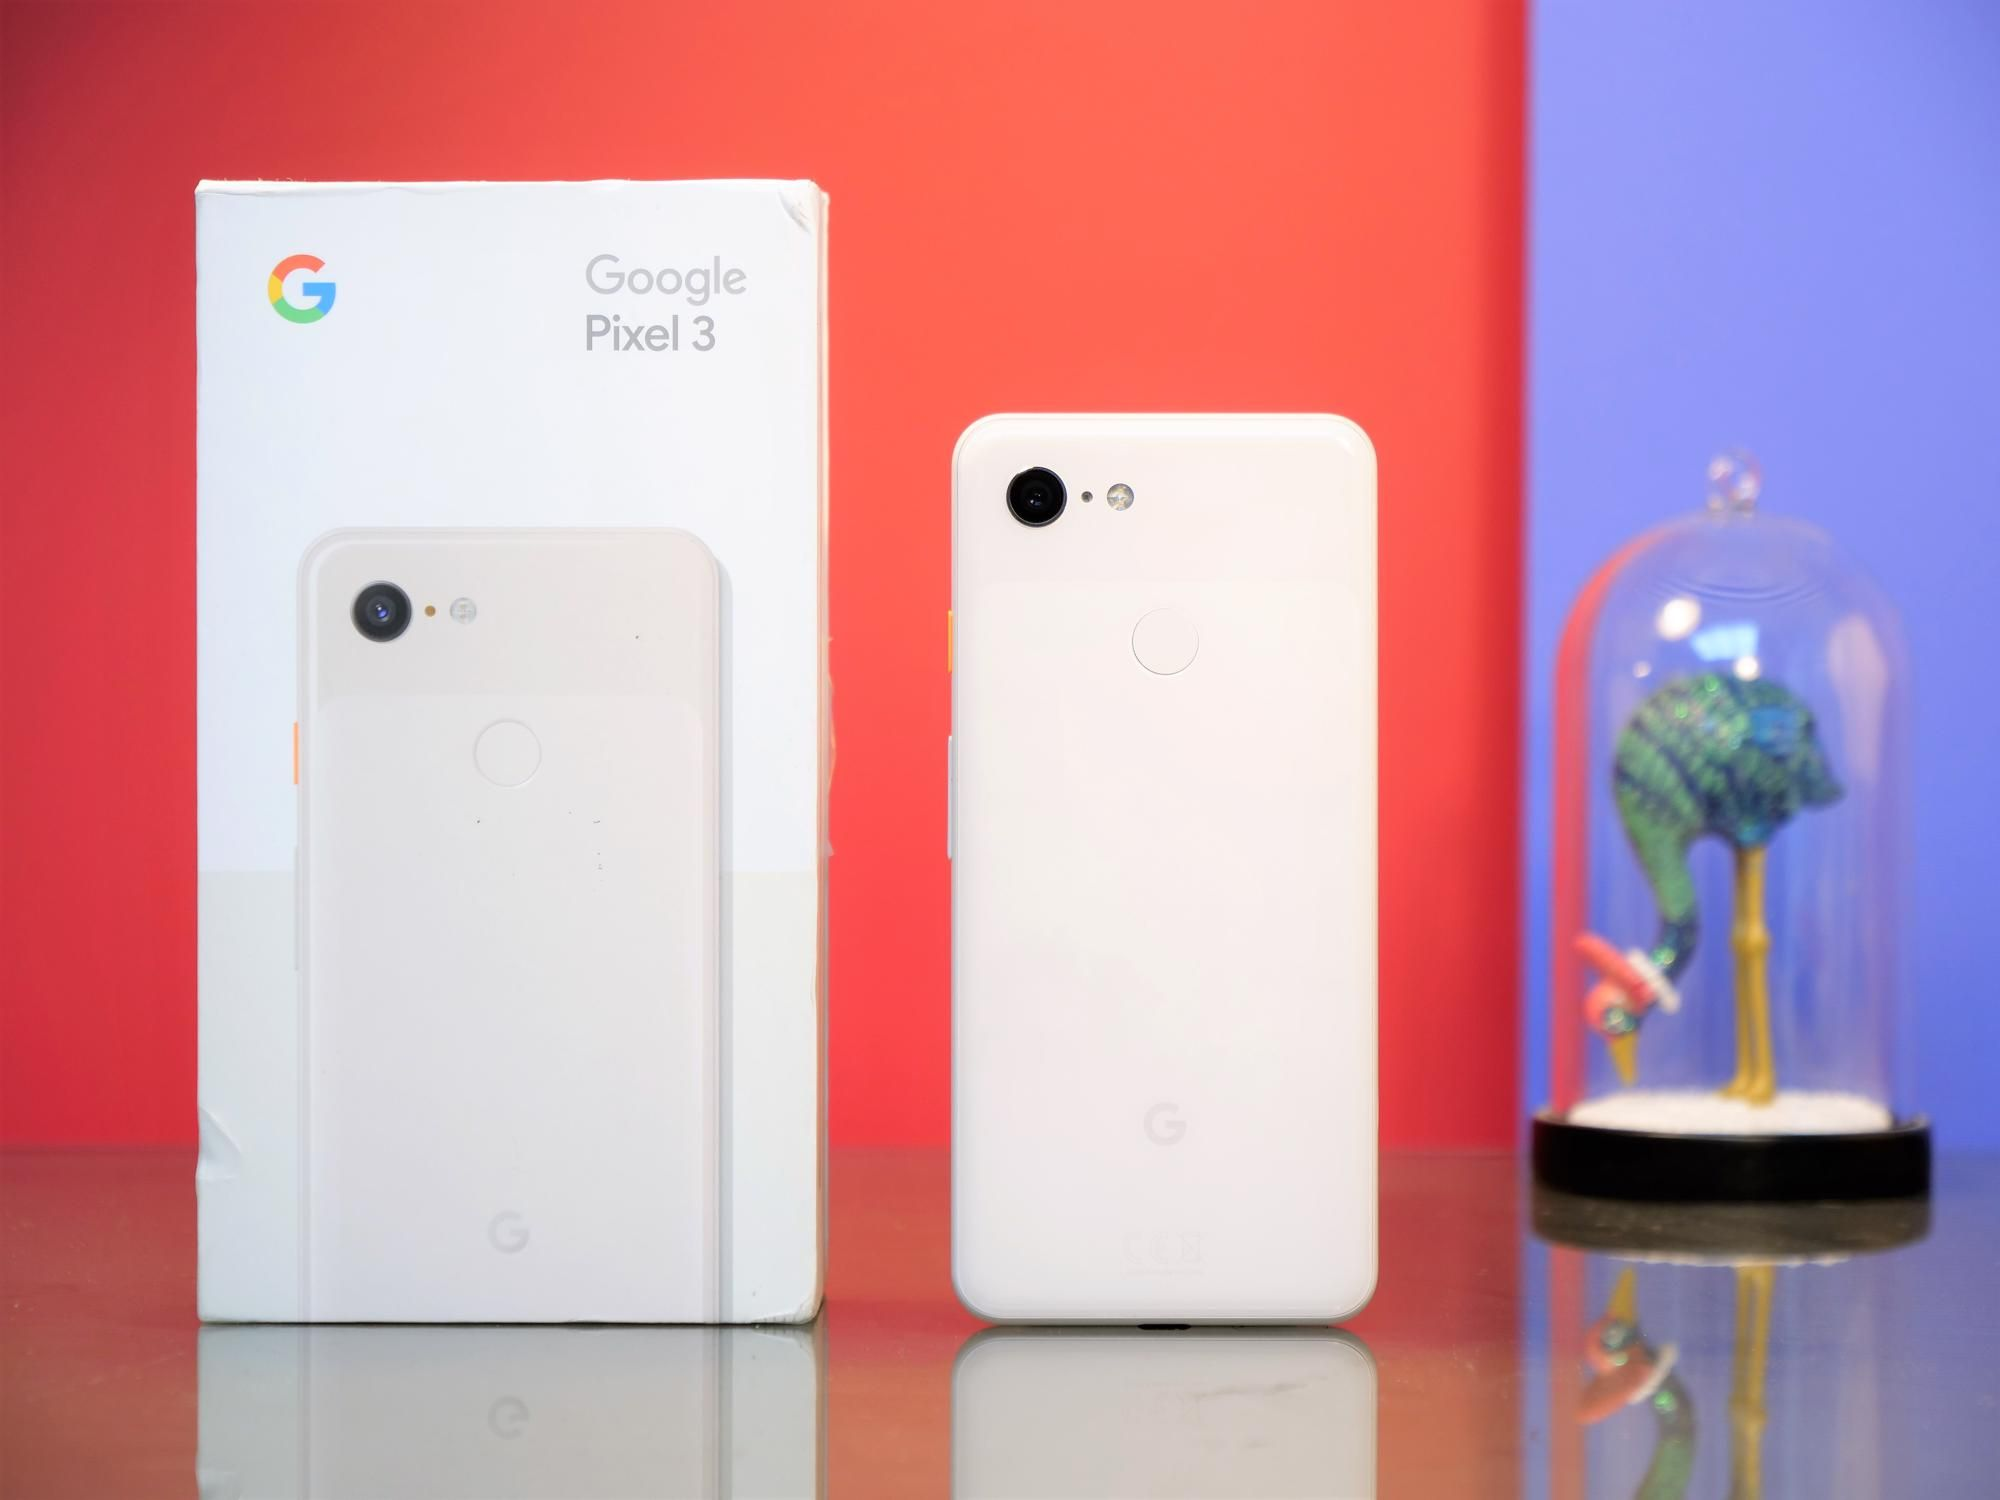 Google Pixel 3 Review: The Best Small Phone Of 2018 - MySmartPrice